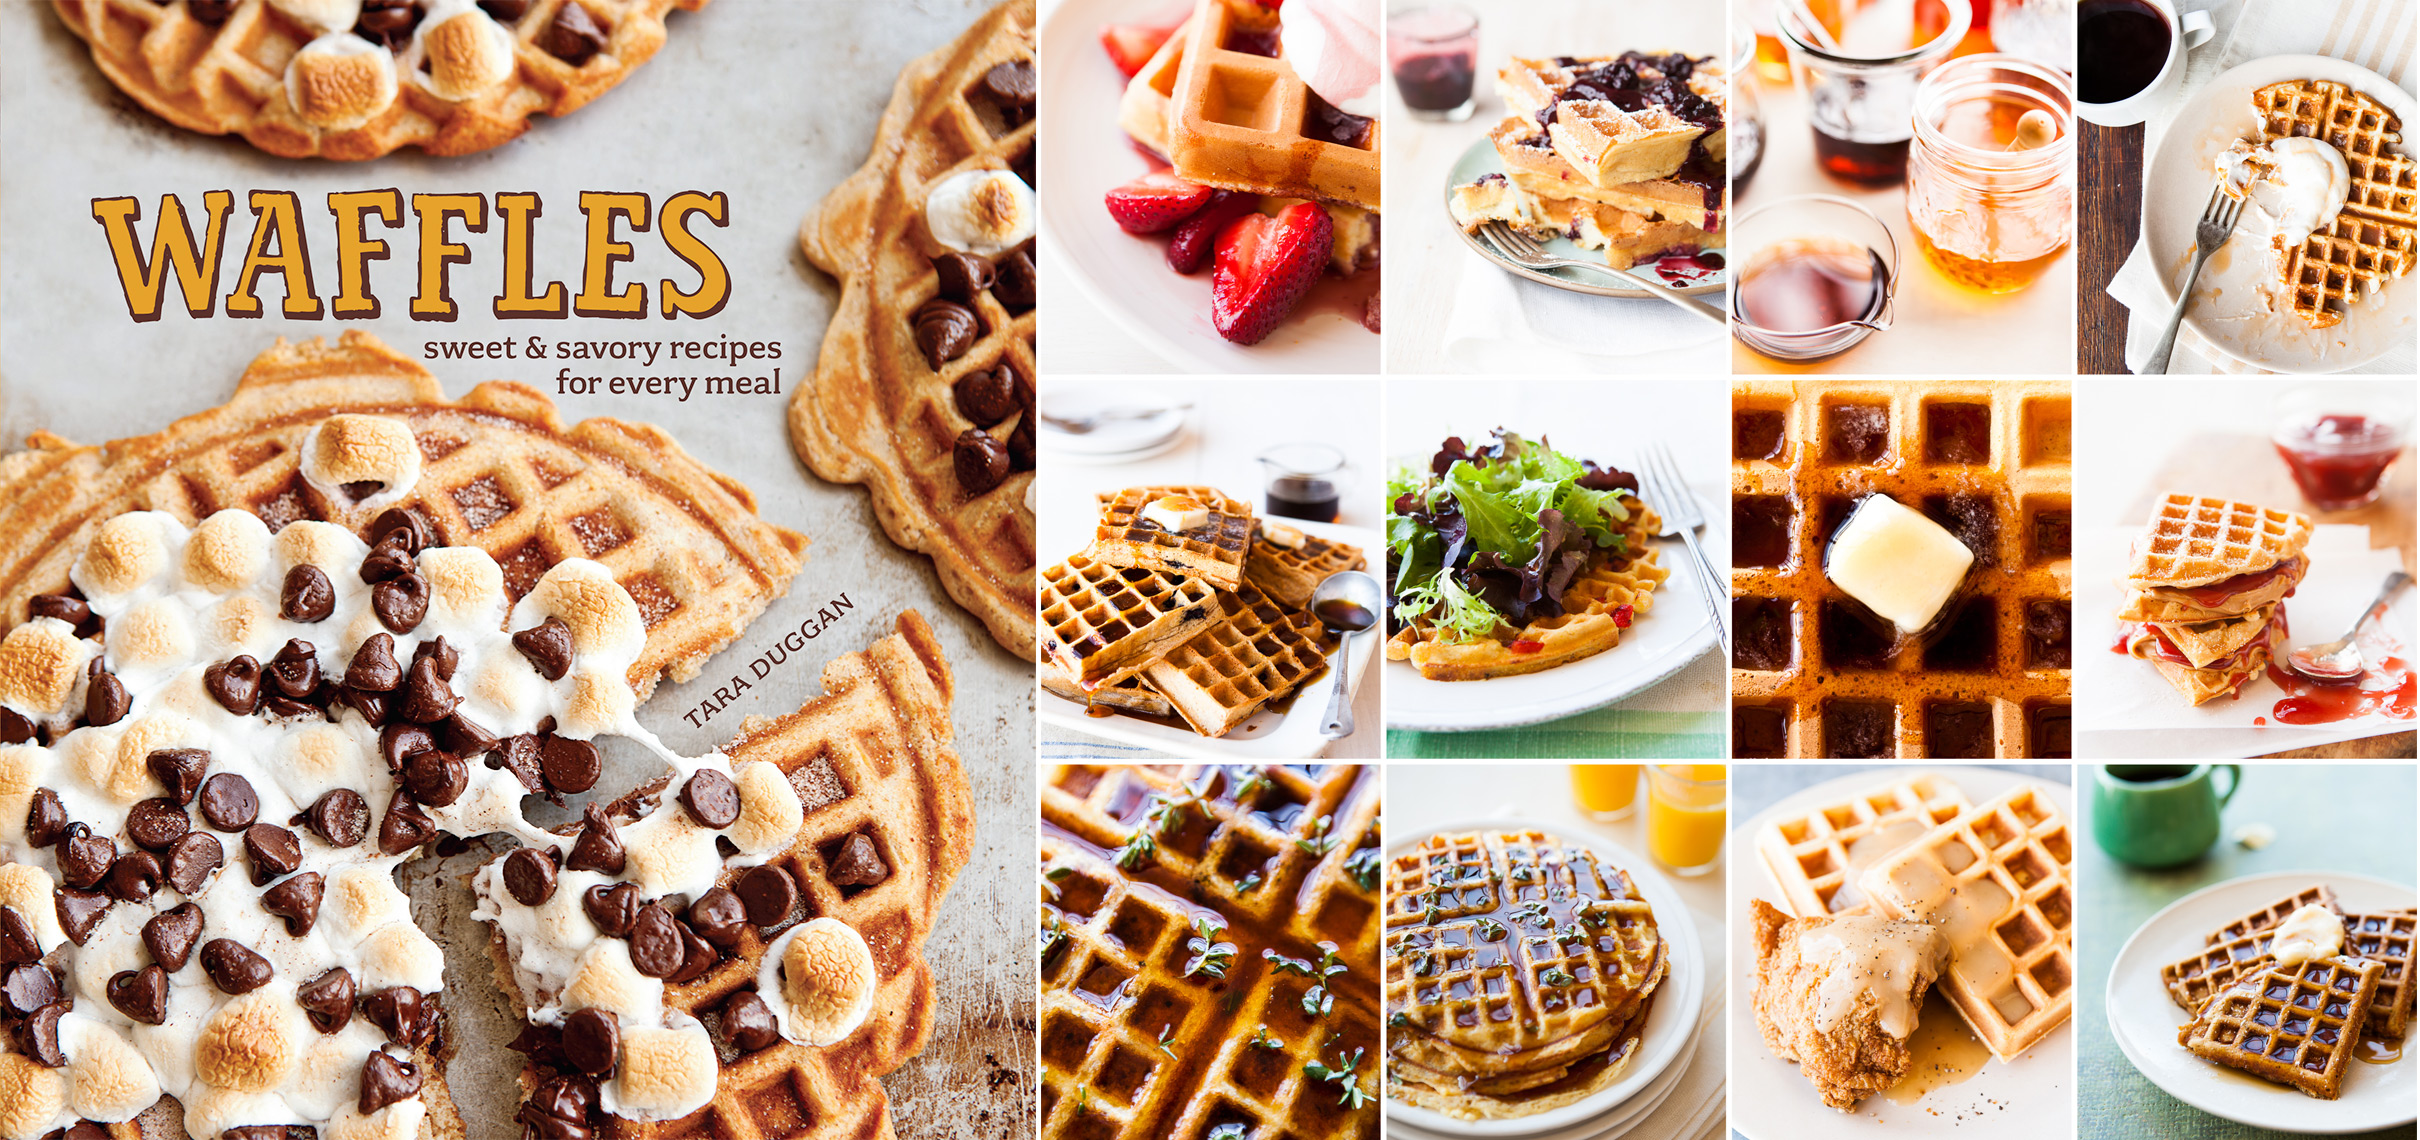 WilliamsSonoma_Waffles